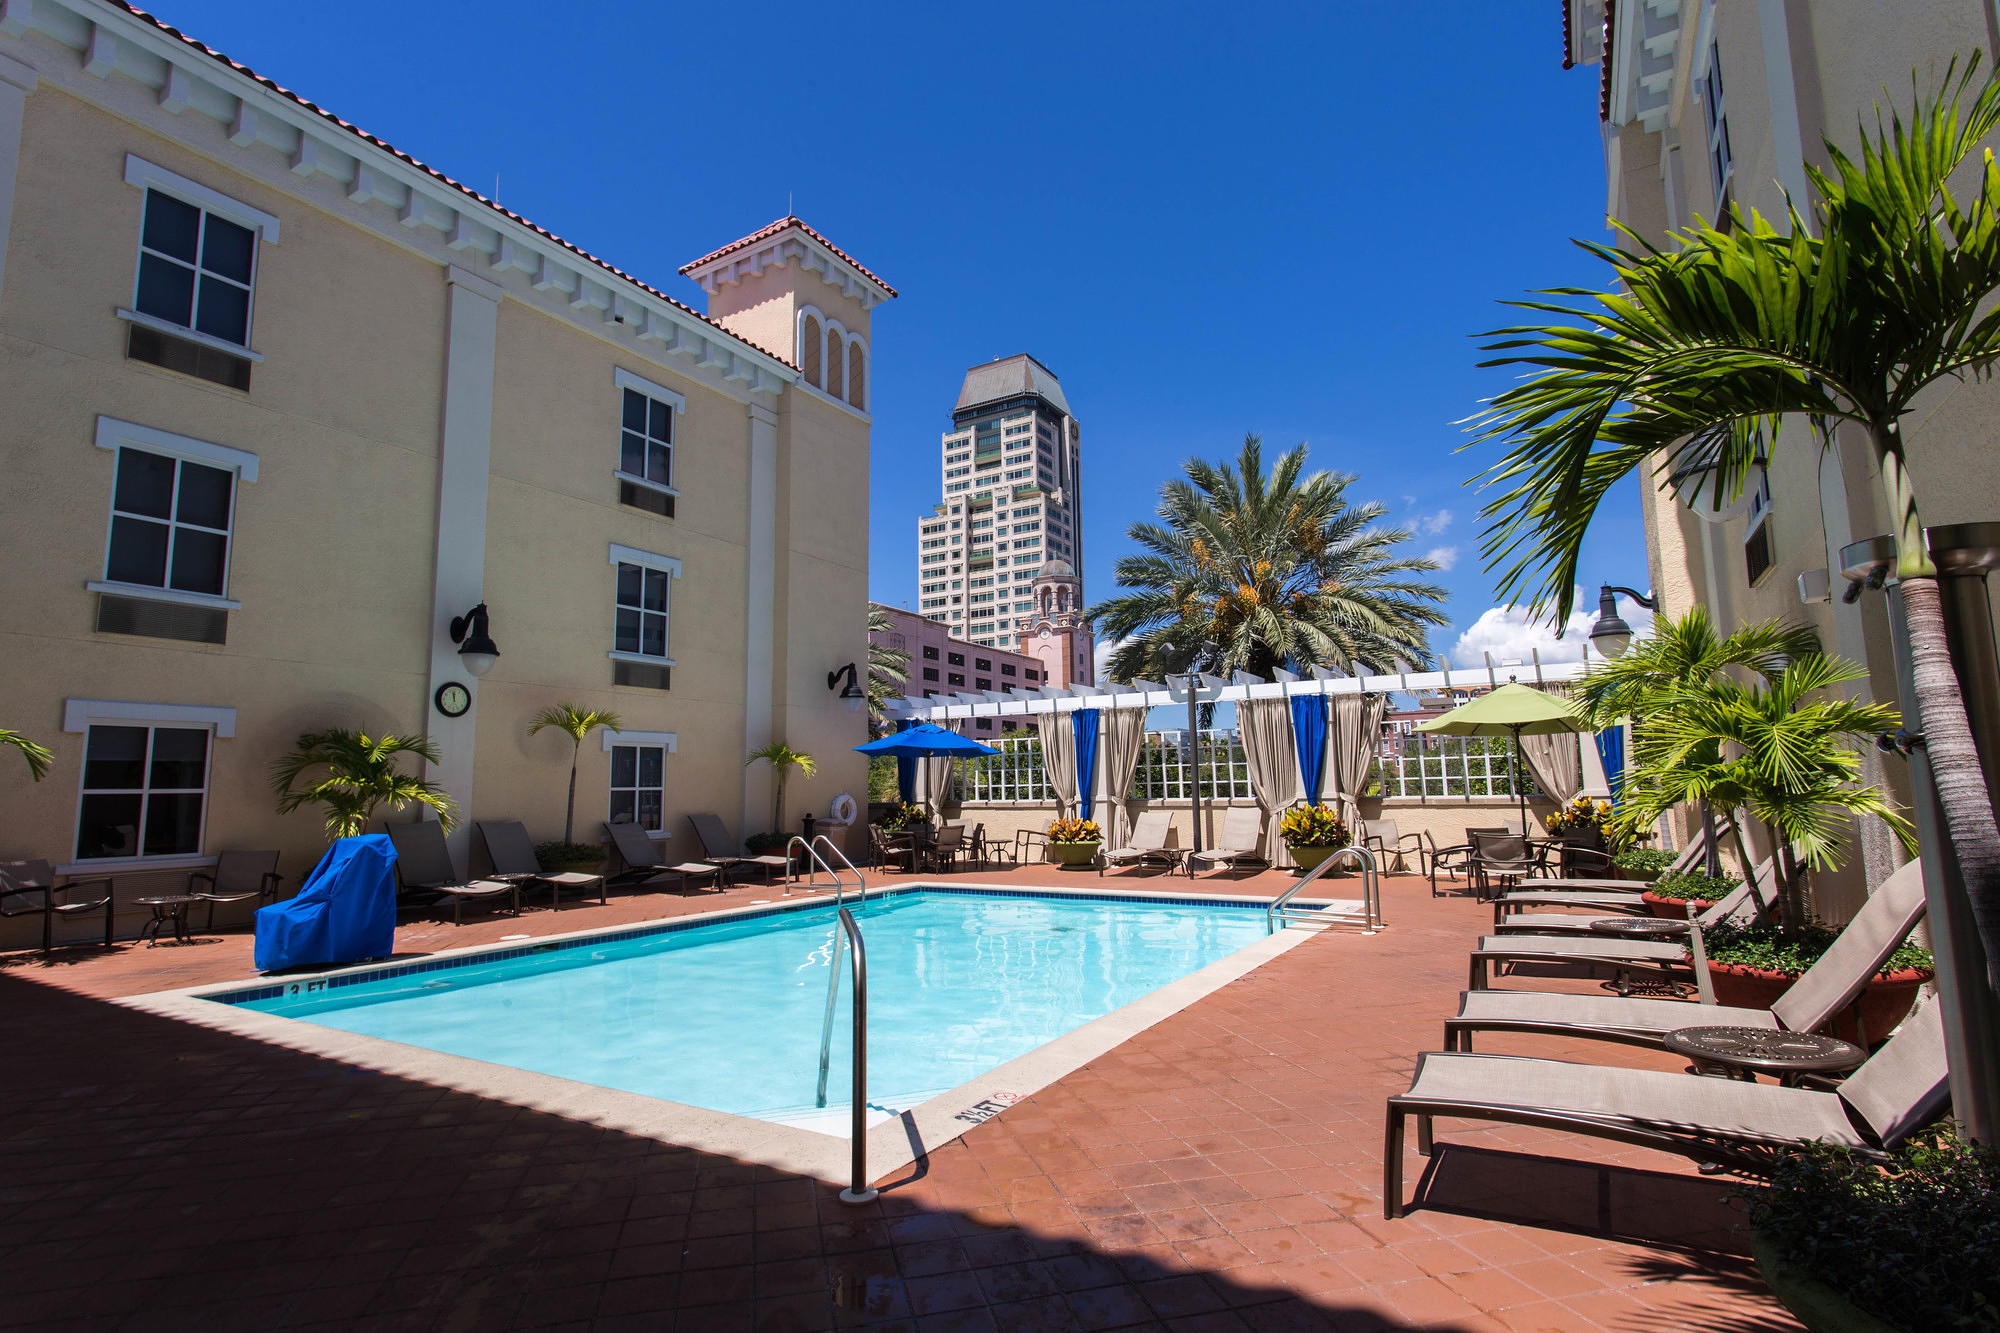 Pool at Hampton Inn and Suites St. Petersburg Downtown